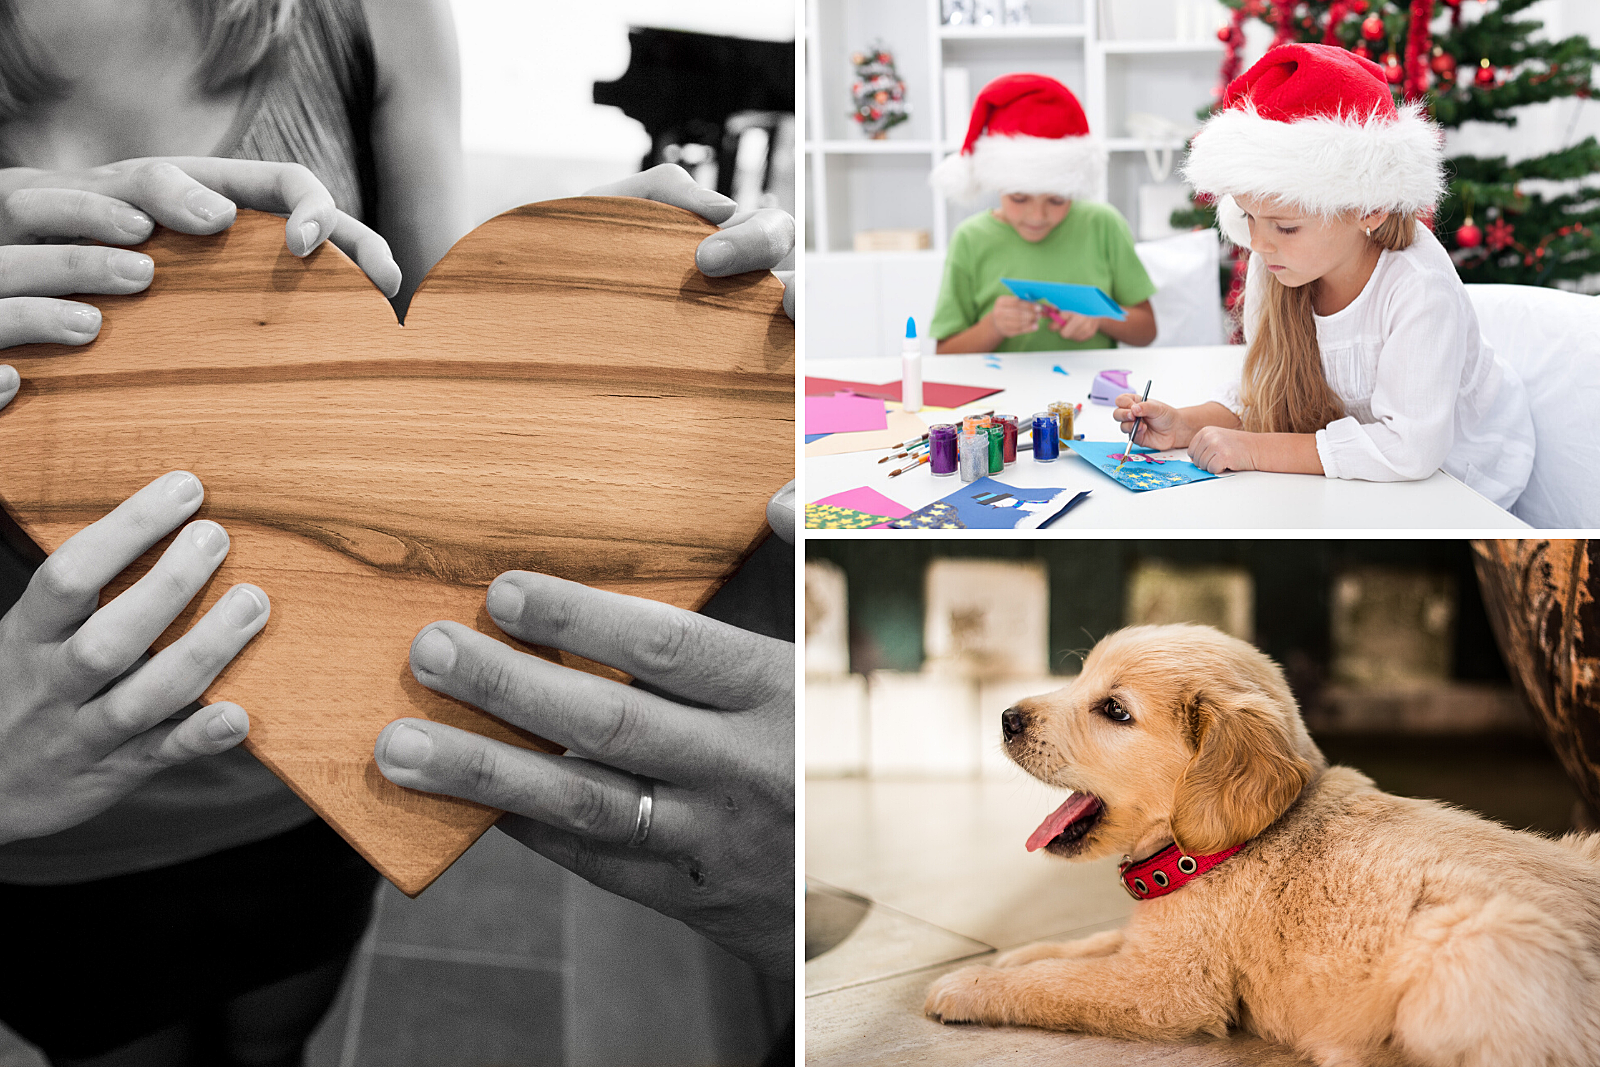 Helping hands, children at Christmas party, puppy